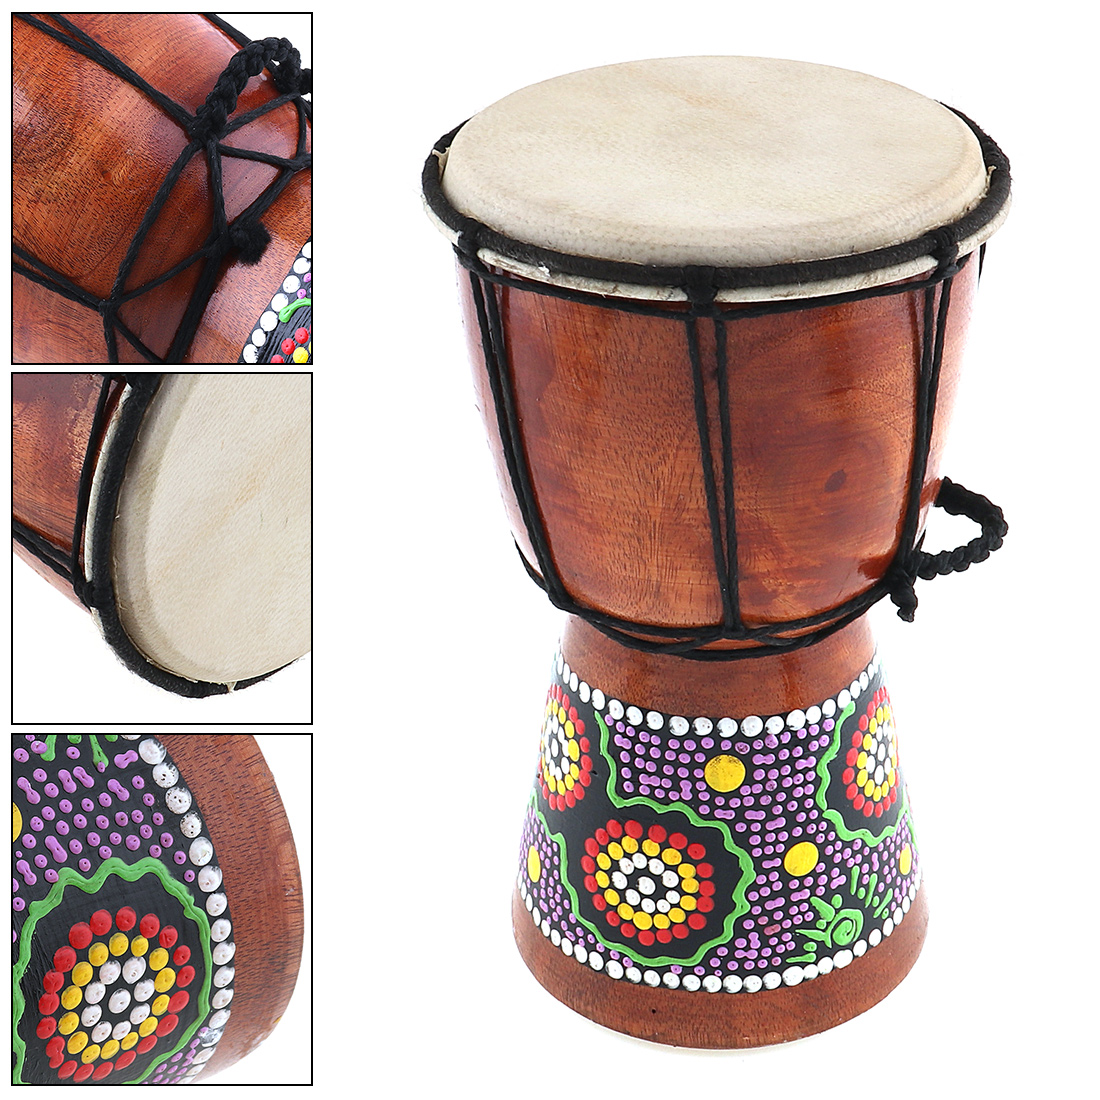 4 Inch 6 Inch Professional African Djembe Drum Wood Goat Skin Good Sound Traditional Musical Instrument